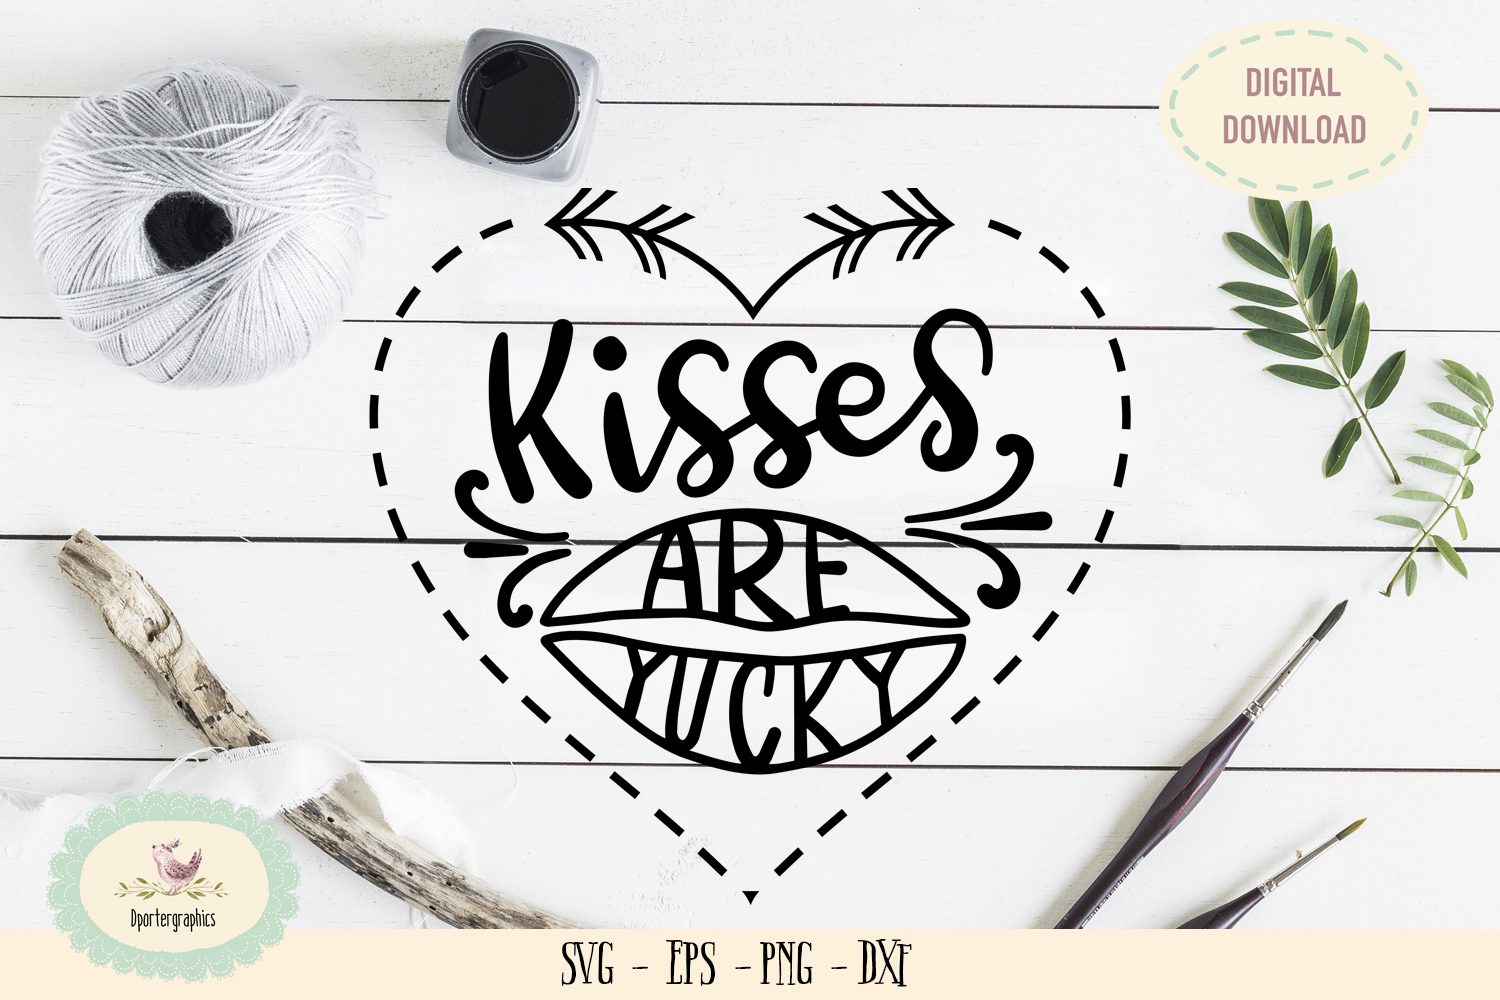 Kisses are yucky SVG cut file love heart lips example image 1